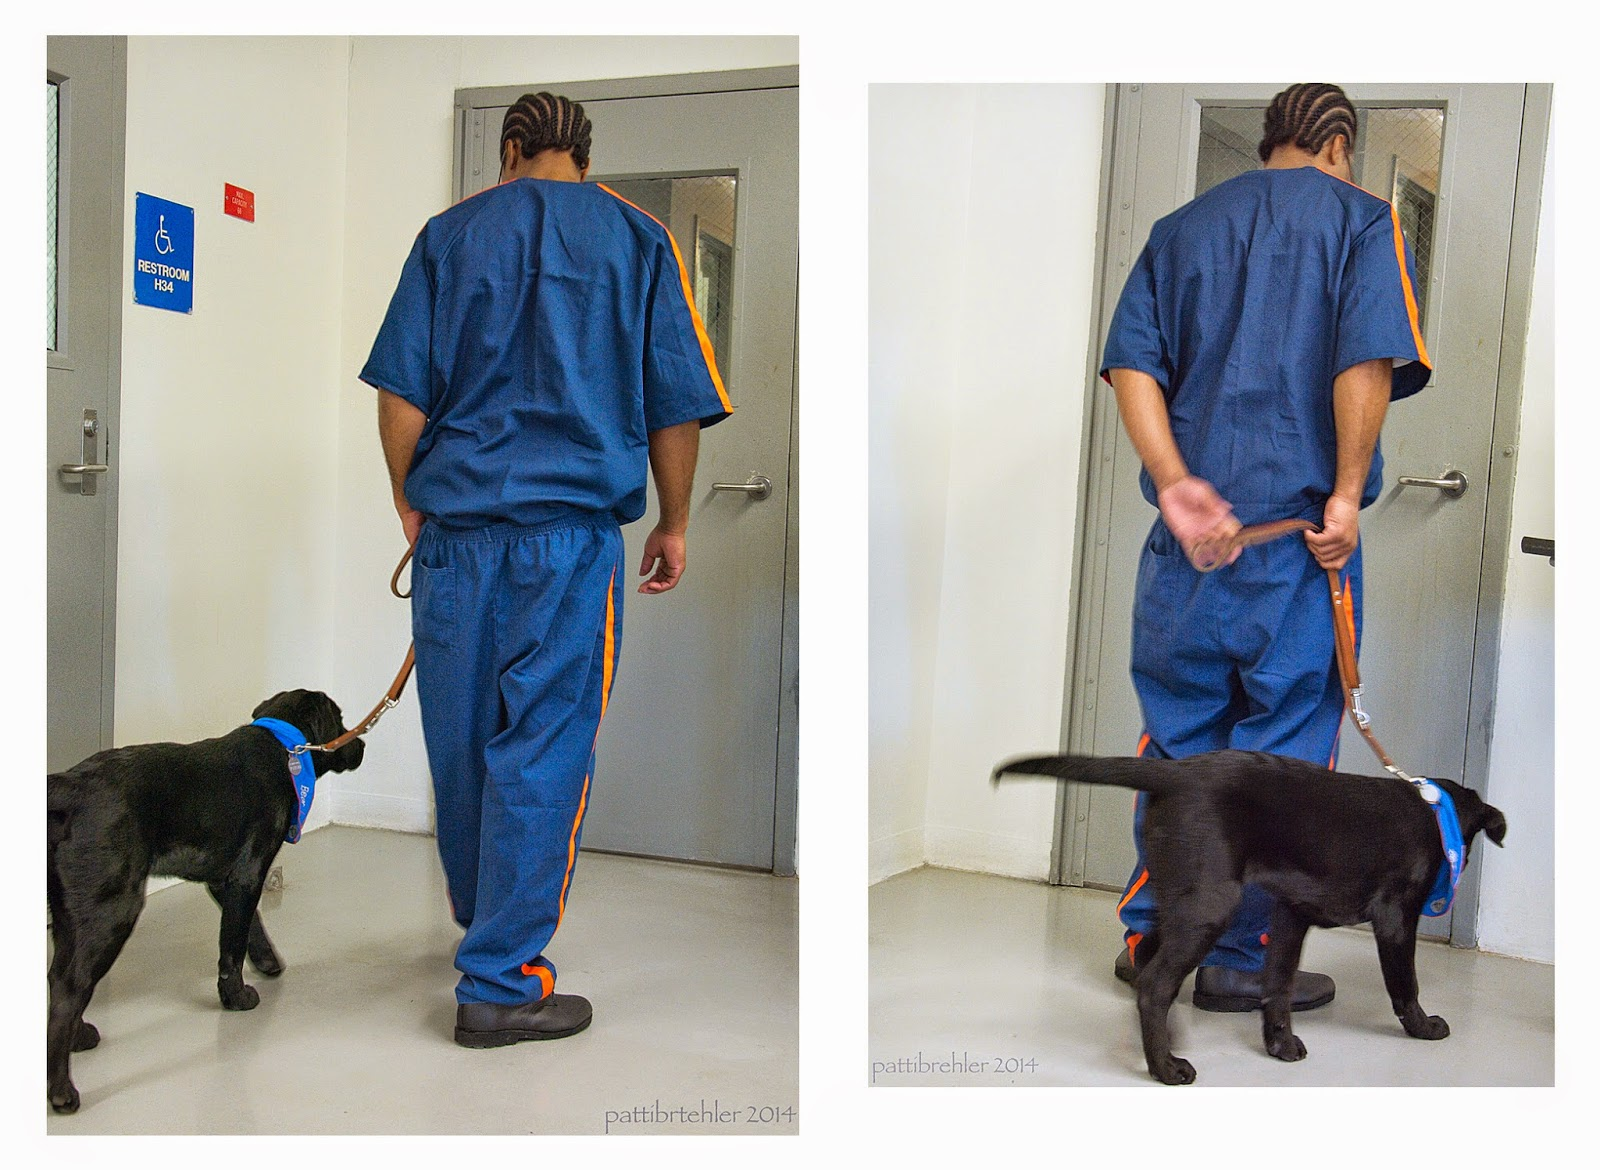 This is also two picture in one. On the left side, an african american man is walking away from the camera toward the same door. He is wearing the blue prison uniform and holding a brown leash in his left hand. The man is looking down at the black lab puppy that is walking next to his left leg. The leash is hanging very nicely loose. In the photo on the right side the man is passing the leash from his left hand to his right hand behind his back while the puppy is moving around to his right side.